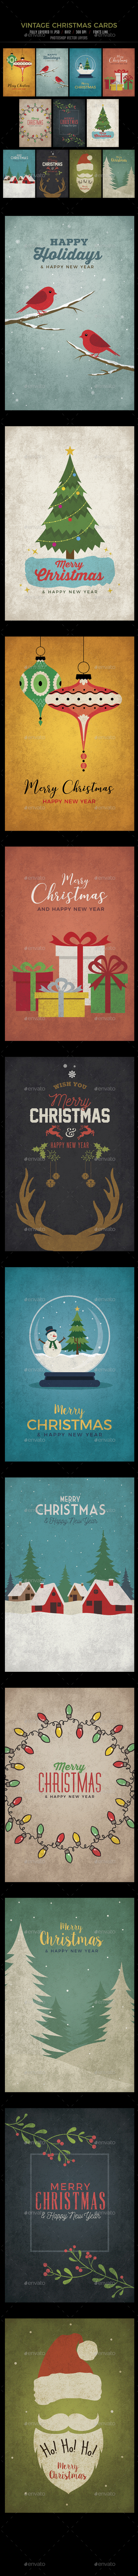 GraphicRiver 11 Vintage Christmas Card Backgrounds 20922819